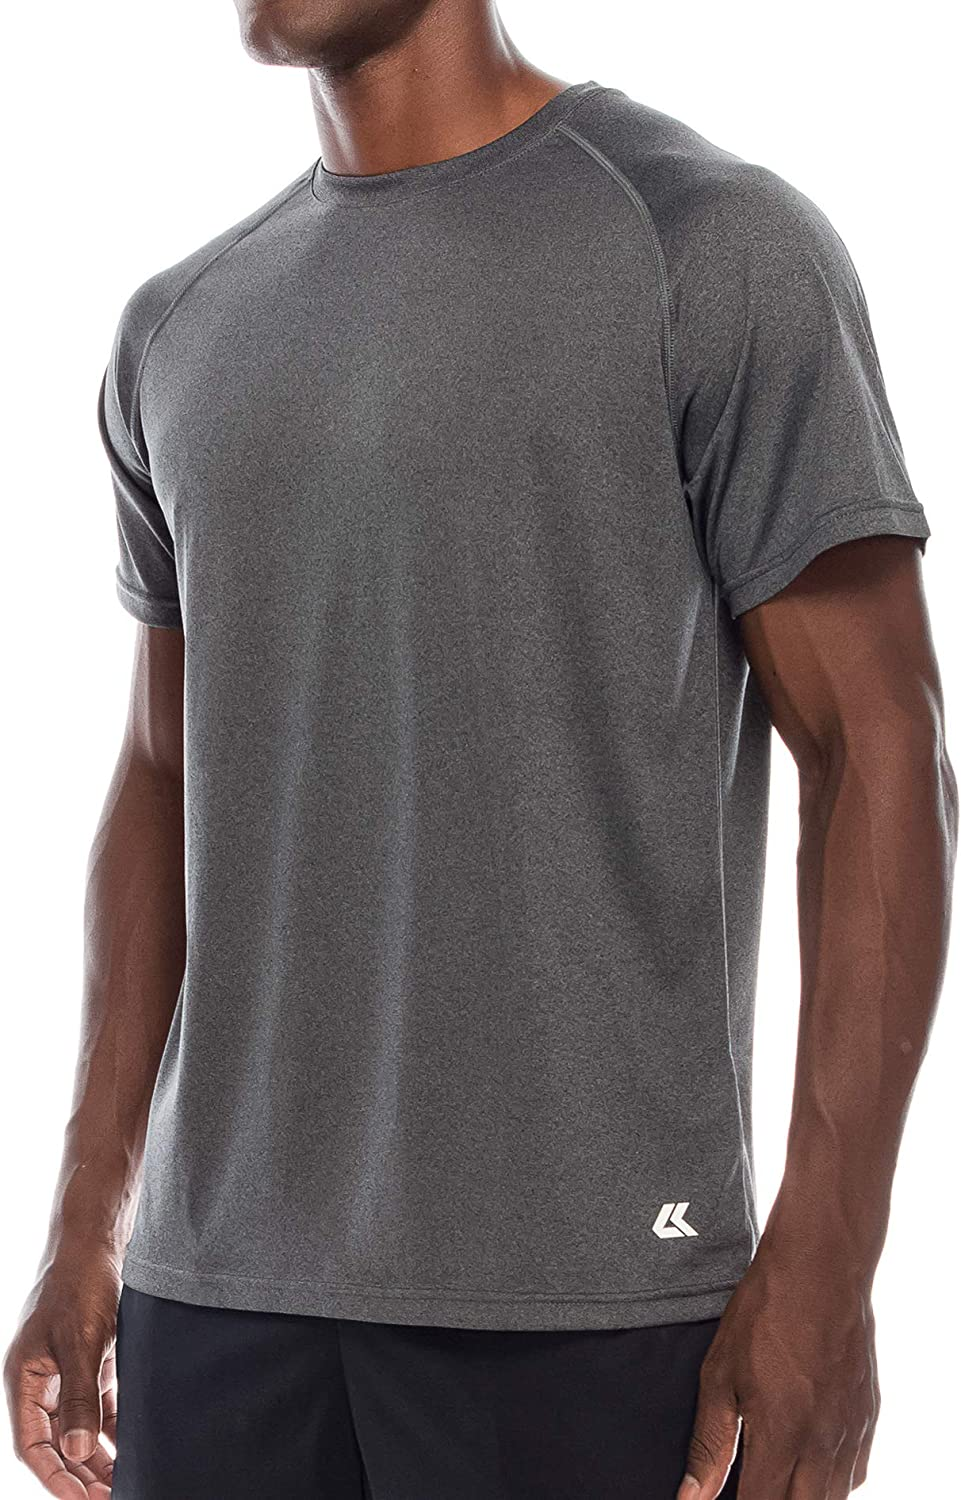 Akro Workout T Shirts for Max 82% OFF Men Sleeve Short Moisture Wicking trust Fit